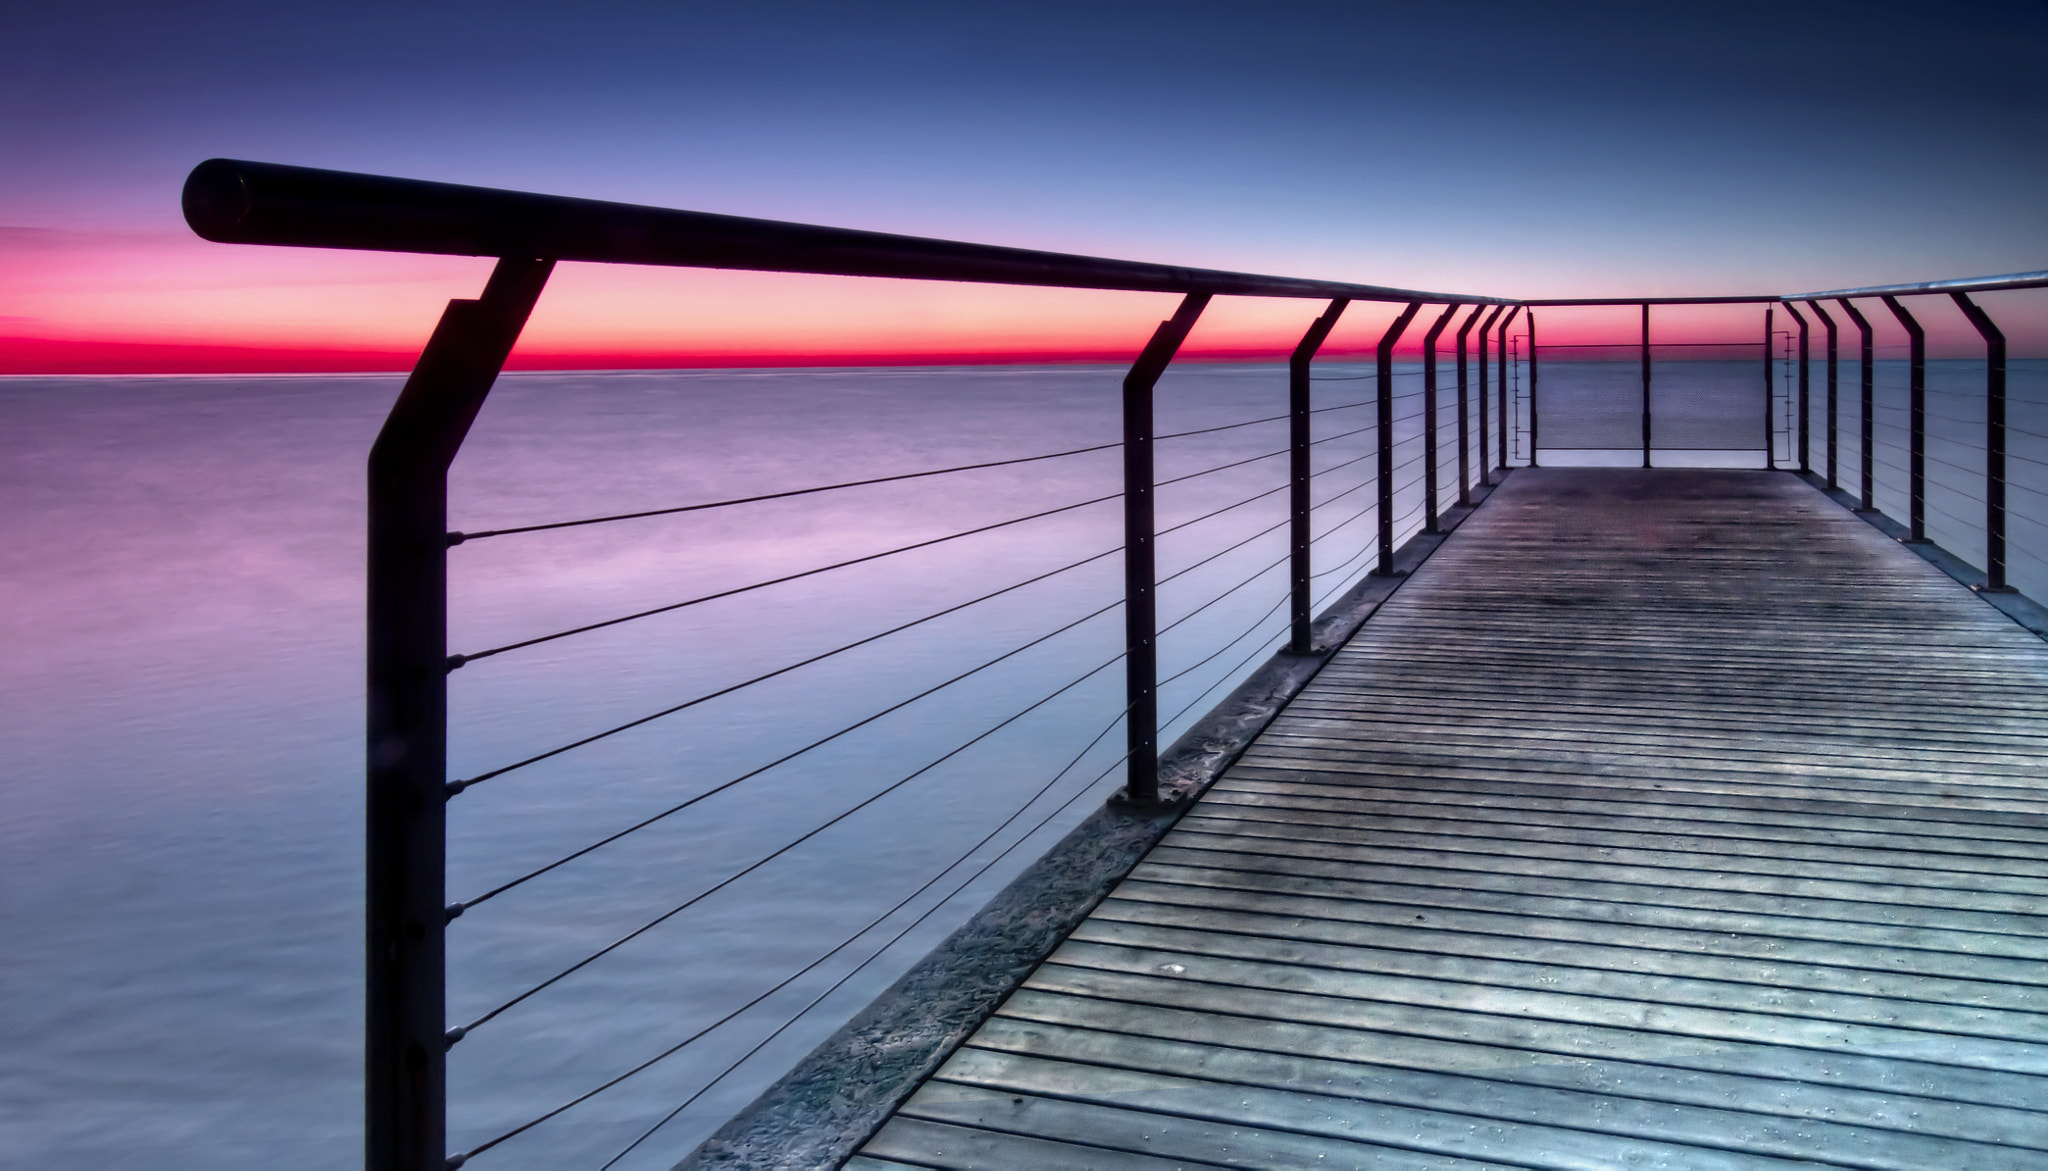 Photograph Above the Sea by Ferran Vega on 500px